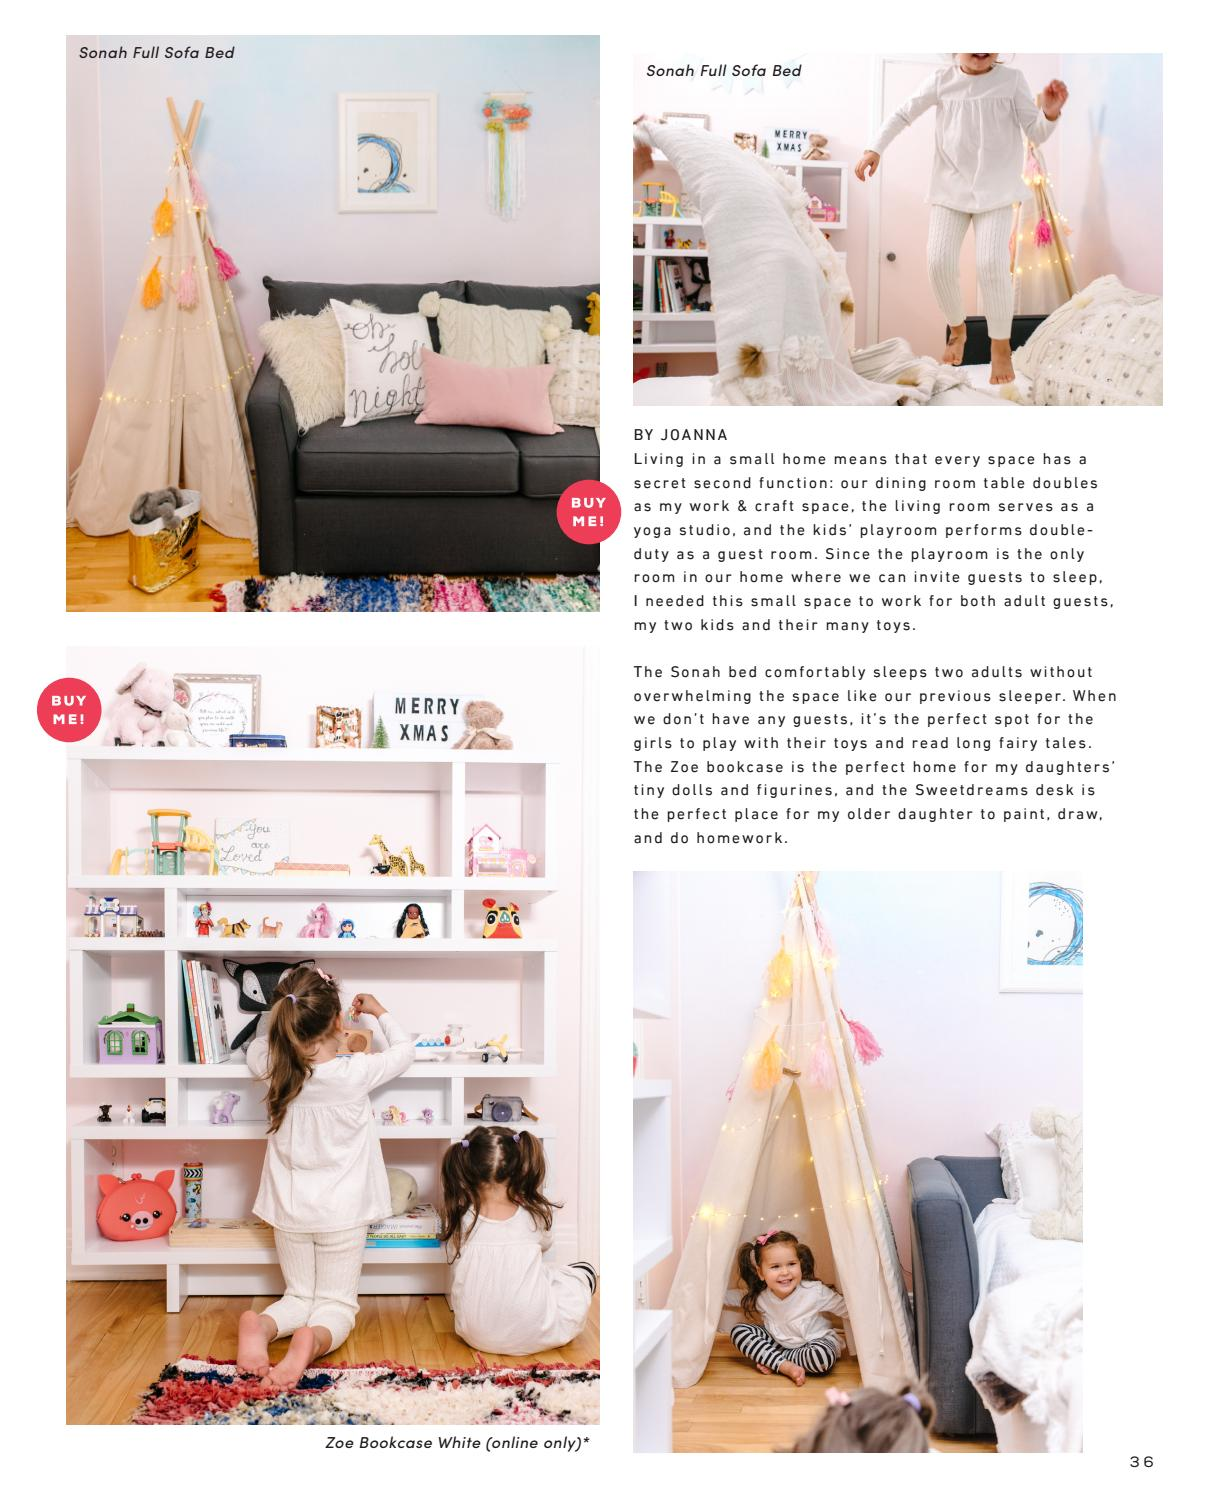 Beautiful Furniture Hello Holiday 2017 By Furniture Issuu How To Read A Book Comfortably Bed furniture Read Comfortably In Bed